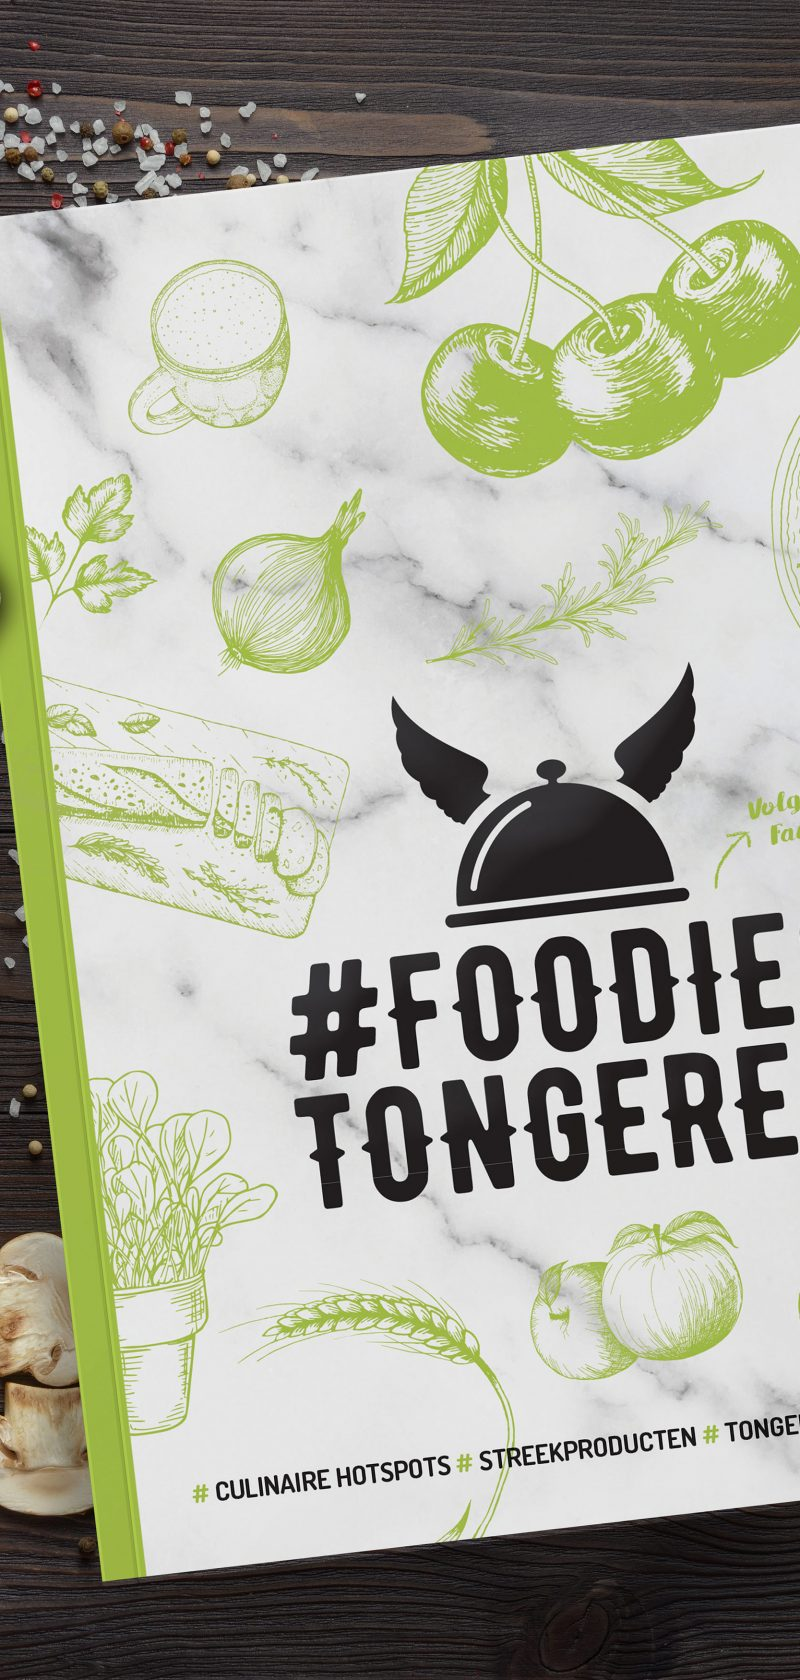 Foodies Tongeren